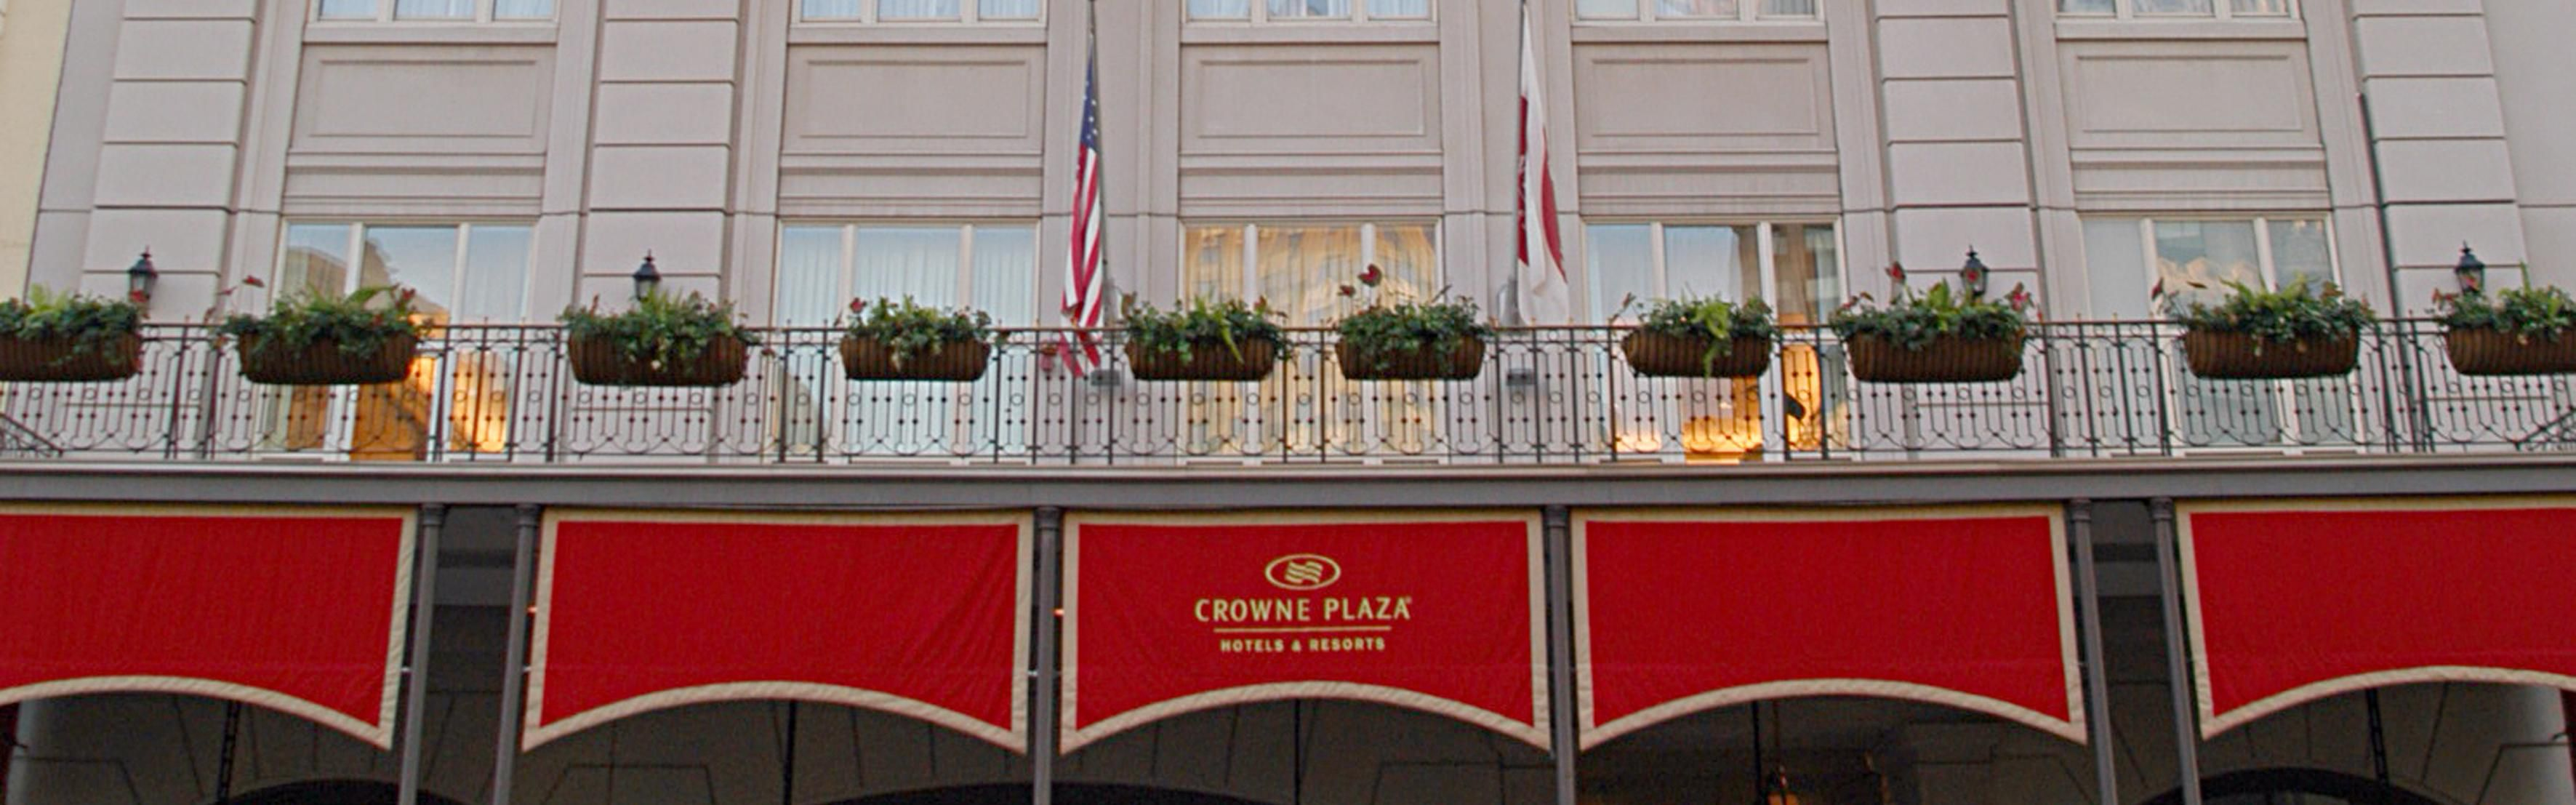 Crowne Plaza New Orleans French Quarter image 0